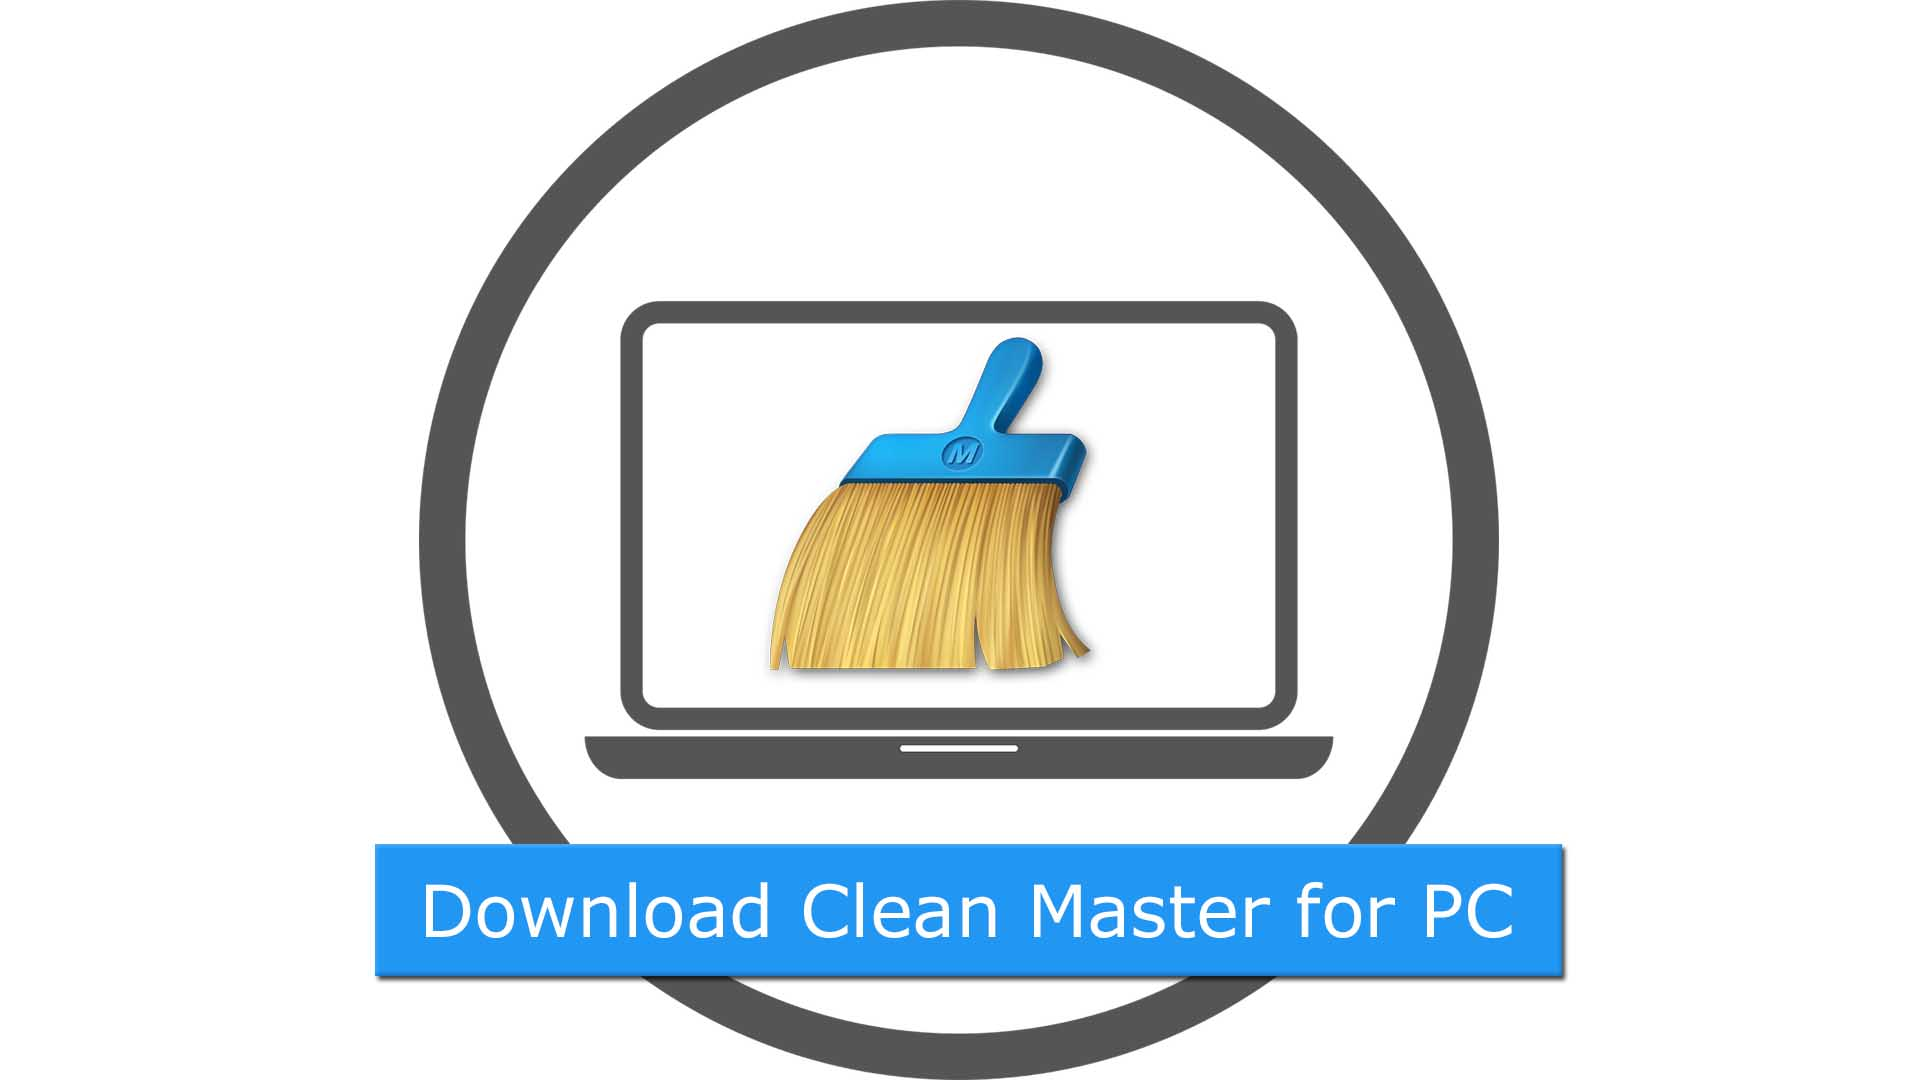 Download Clean Master for PC Windows 10